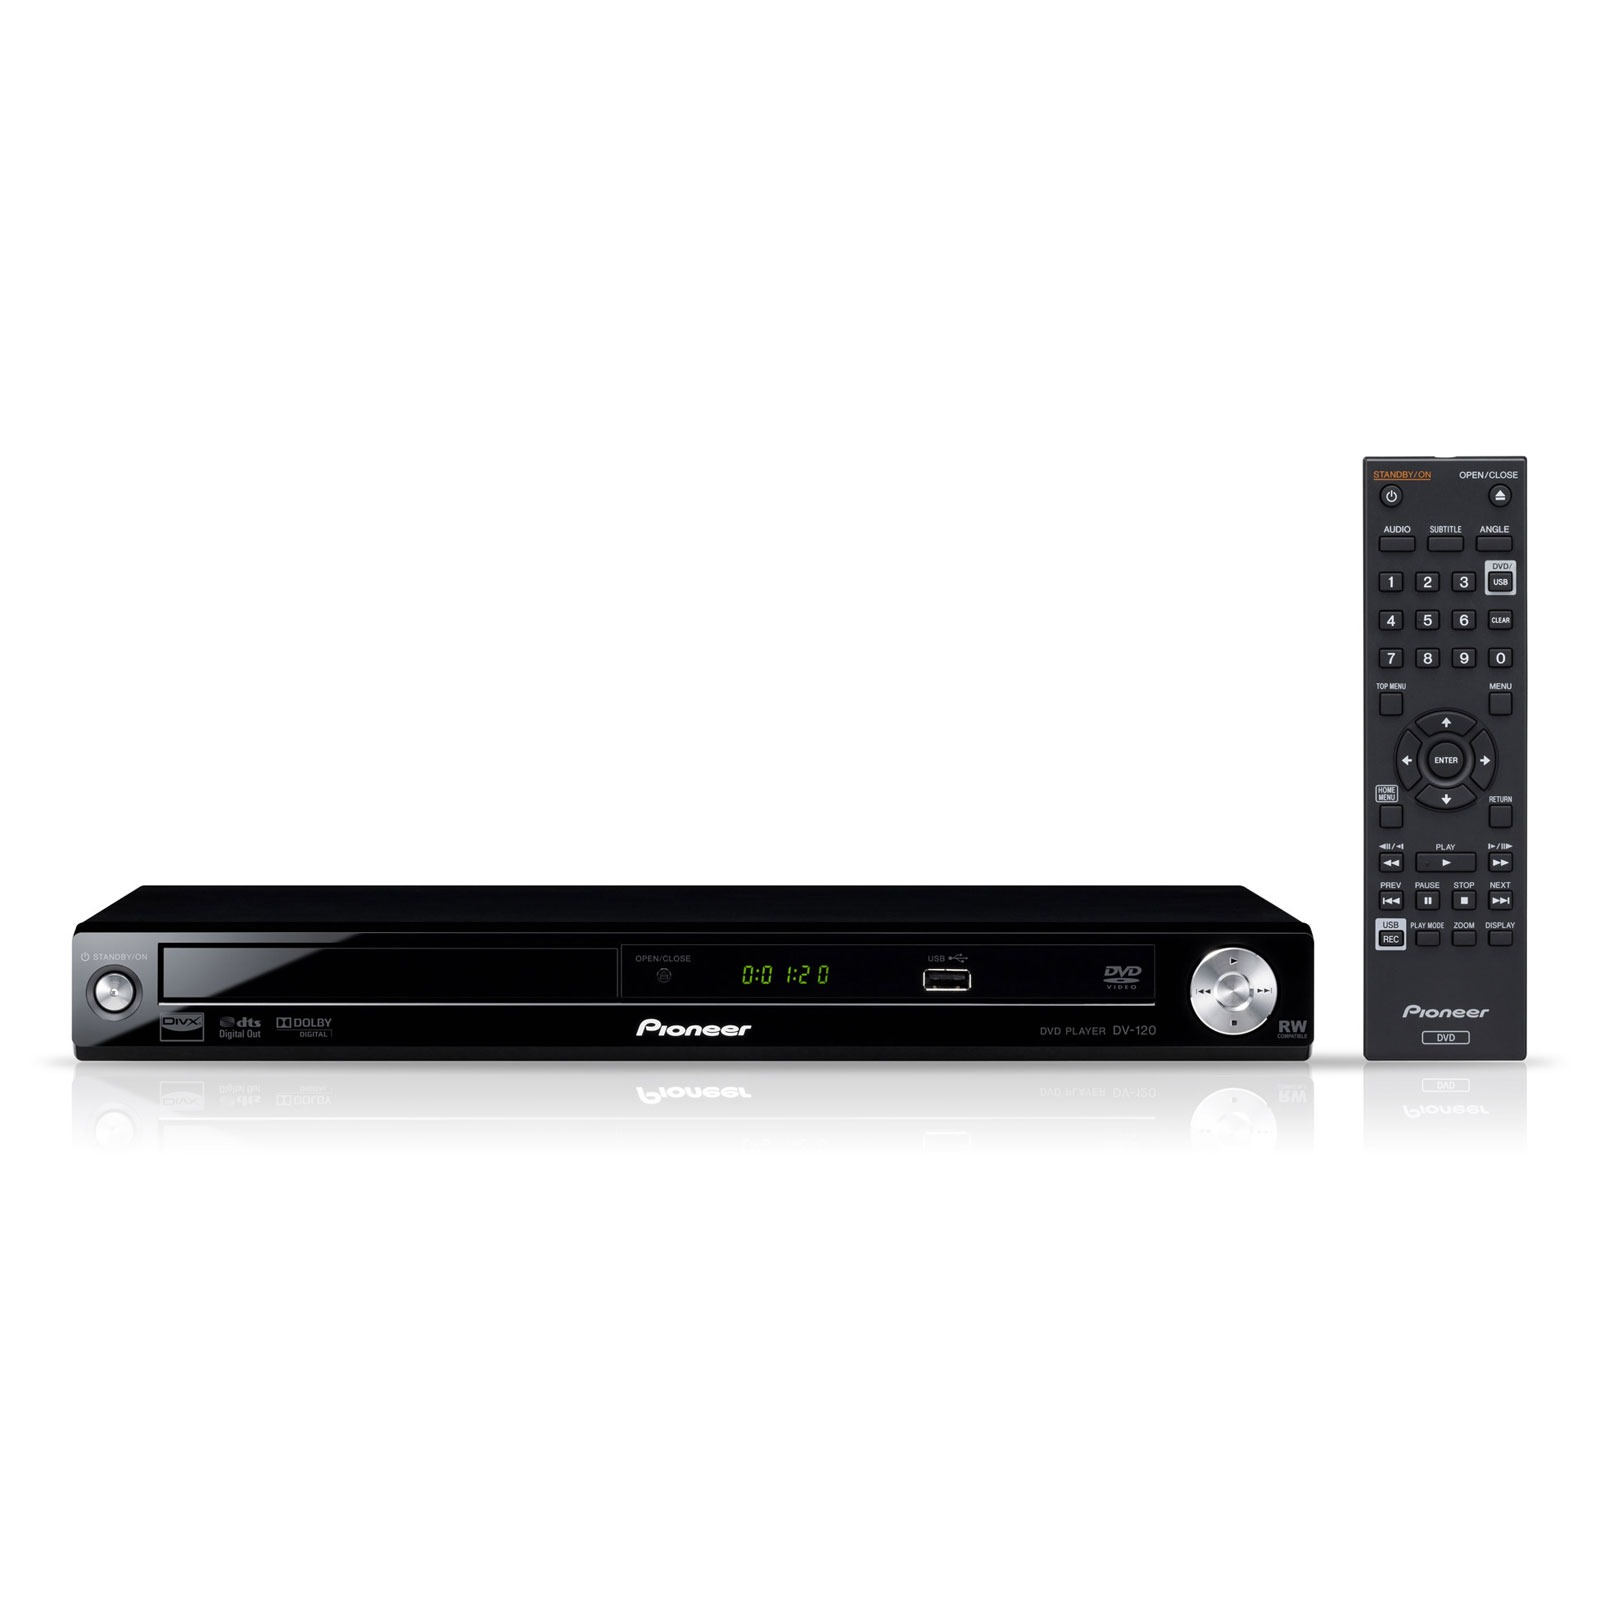 pioneer dv 120 lecteur dvd pioneer sur. Black Bedroom Furniture Sets. Home Design Ideas